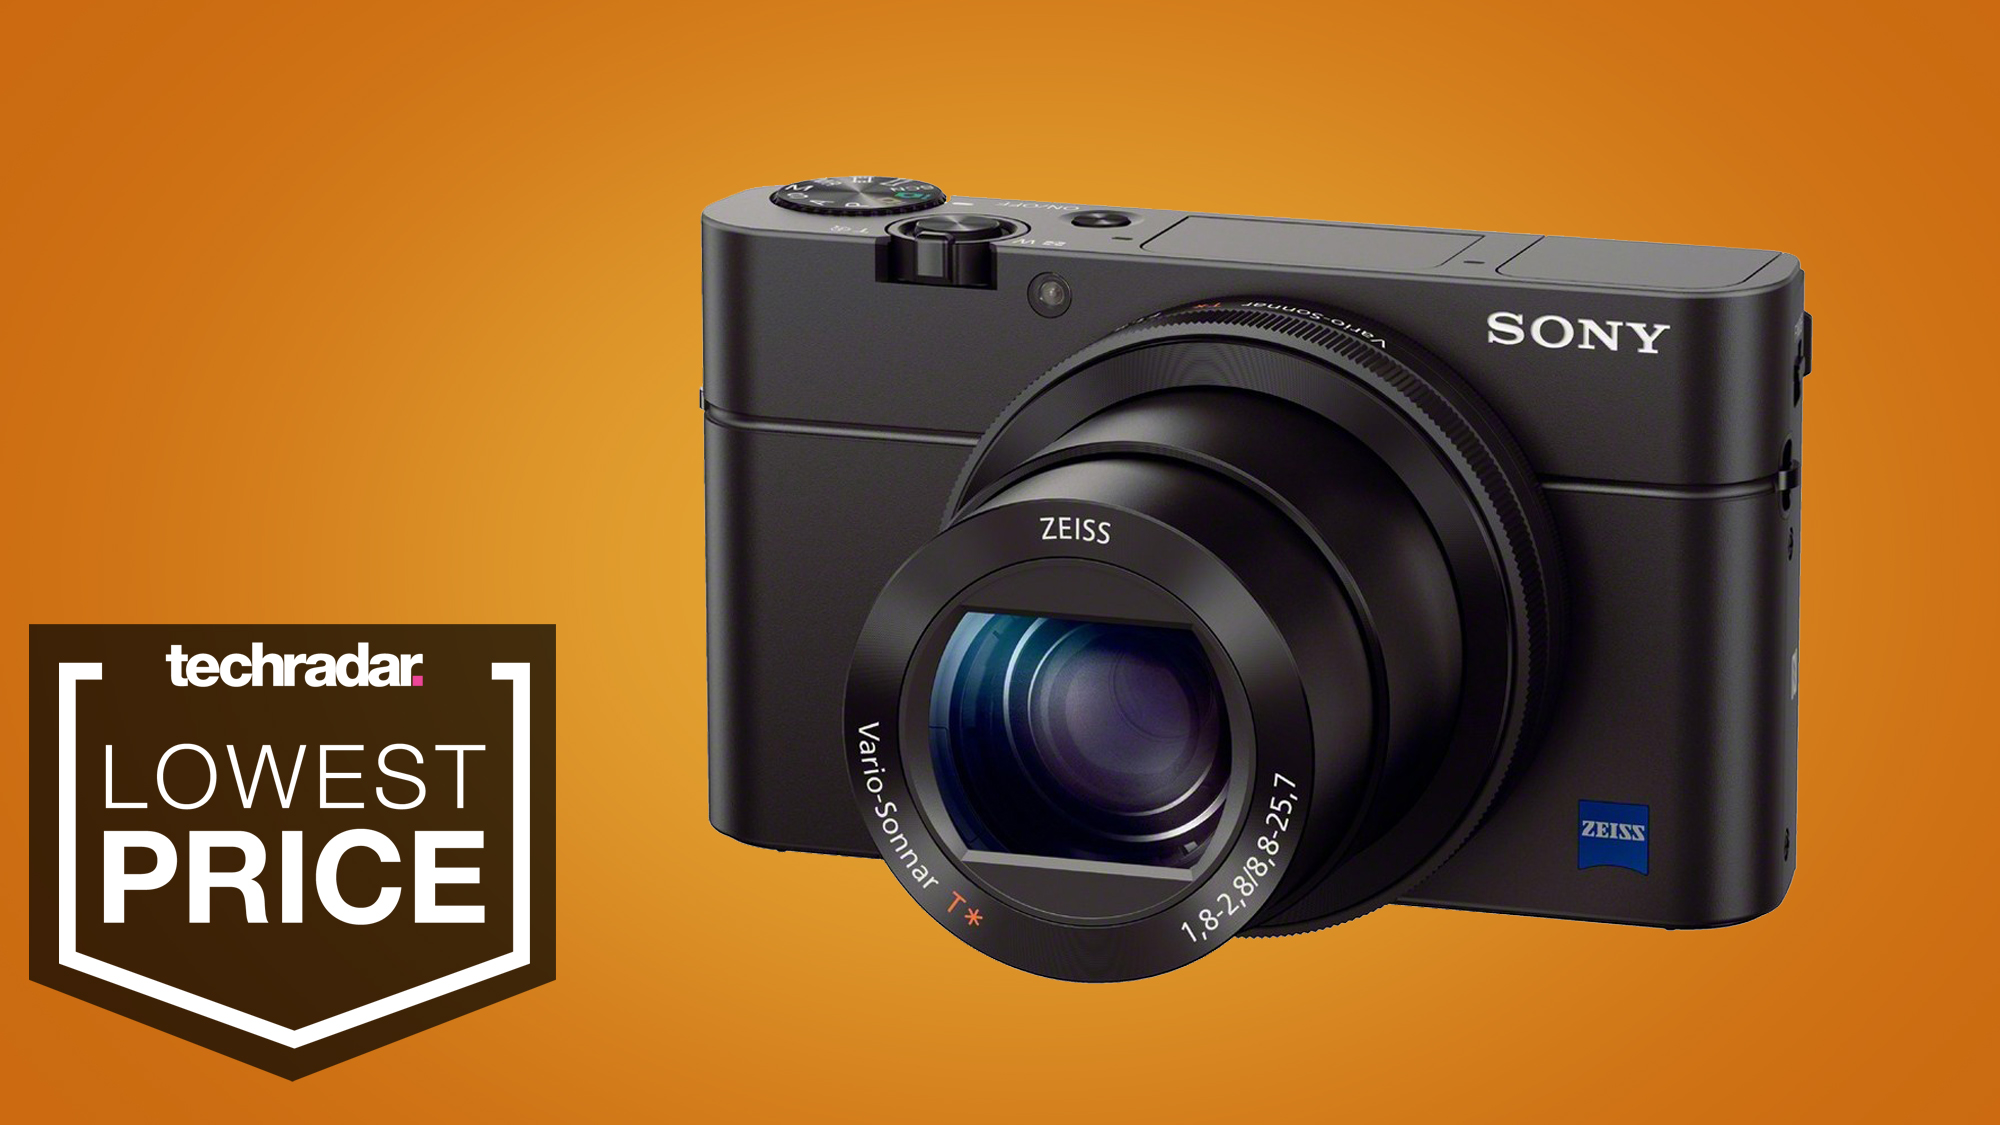 Sony RX100 III gets 56% price slash in the best Christmas compact camera deal